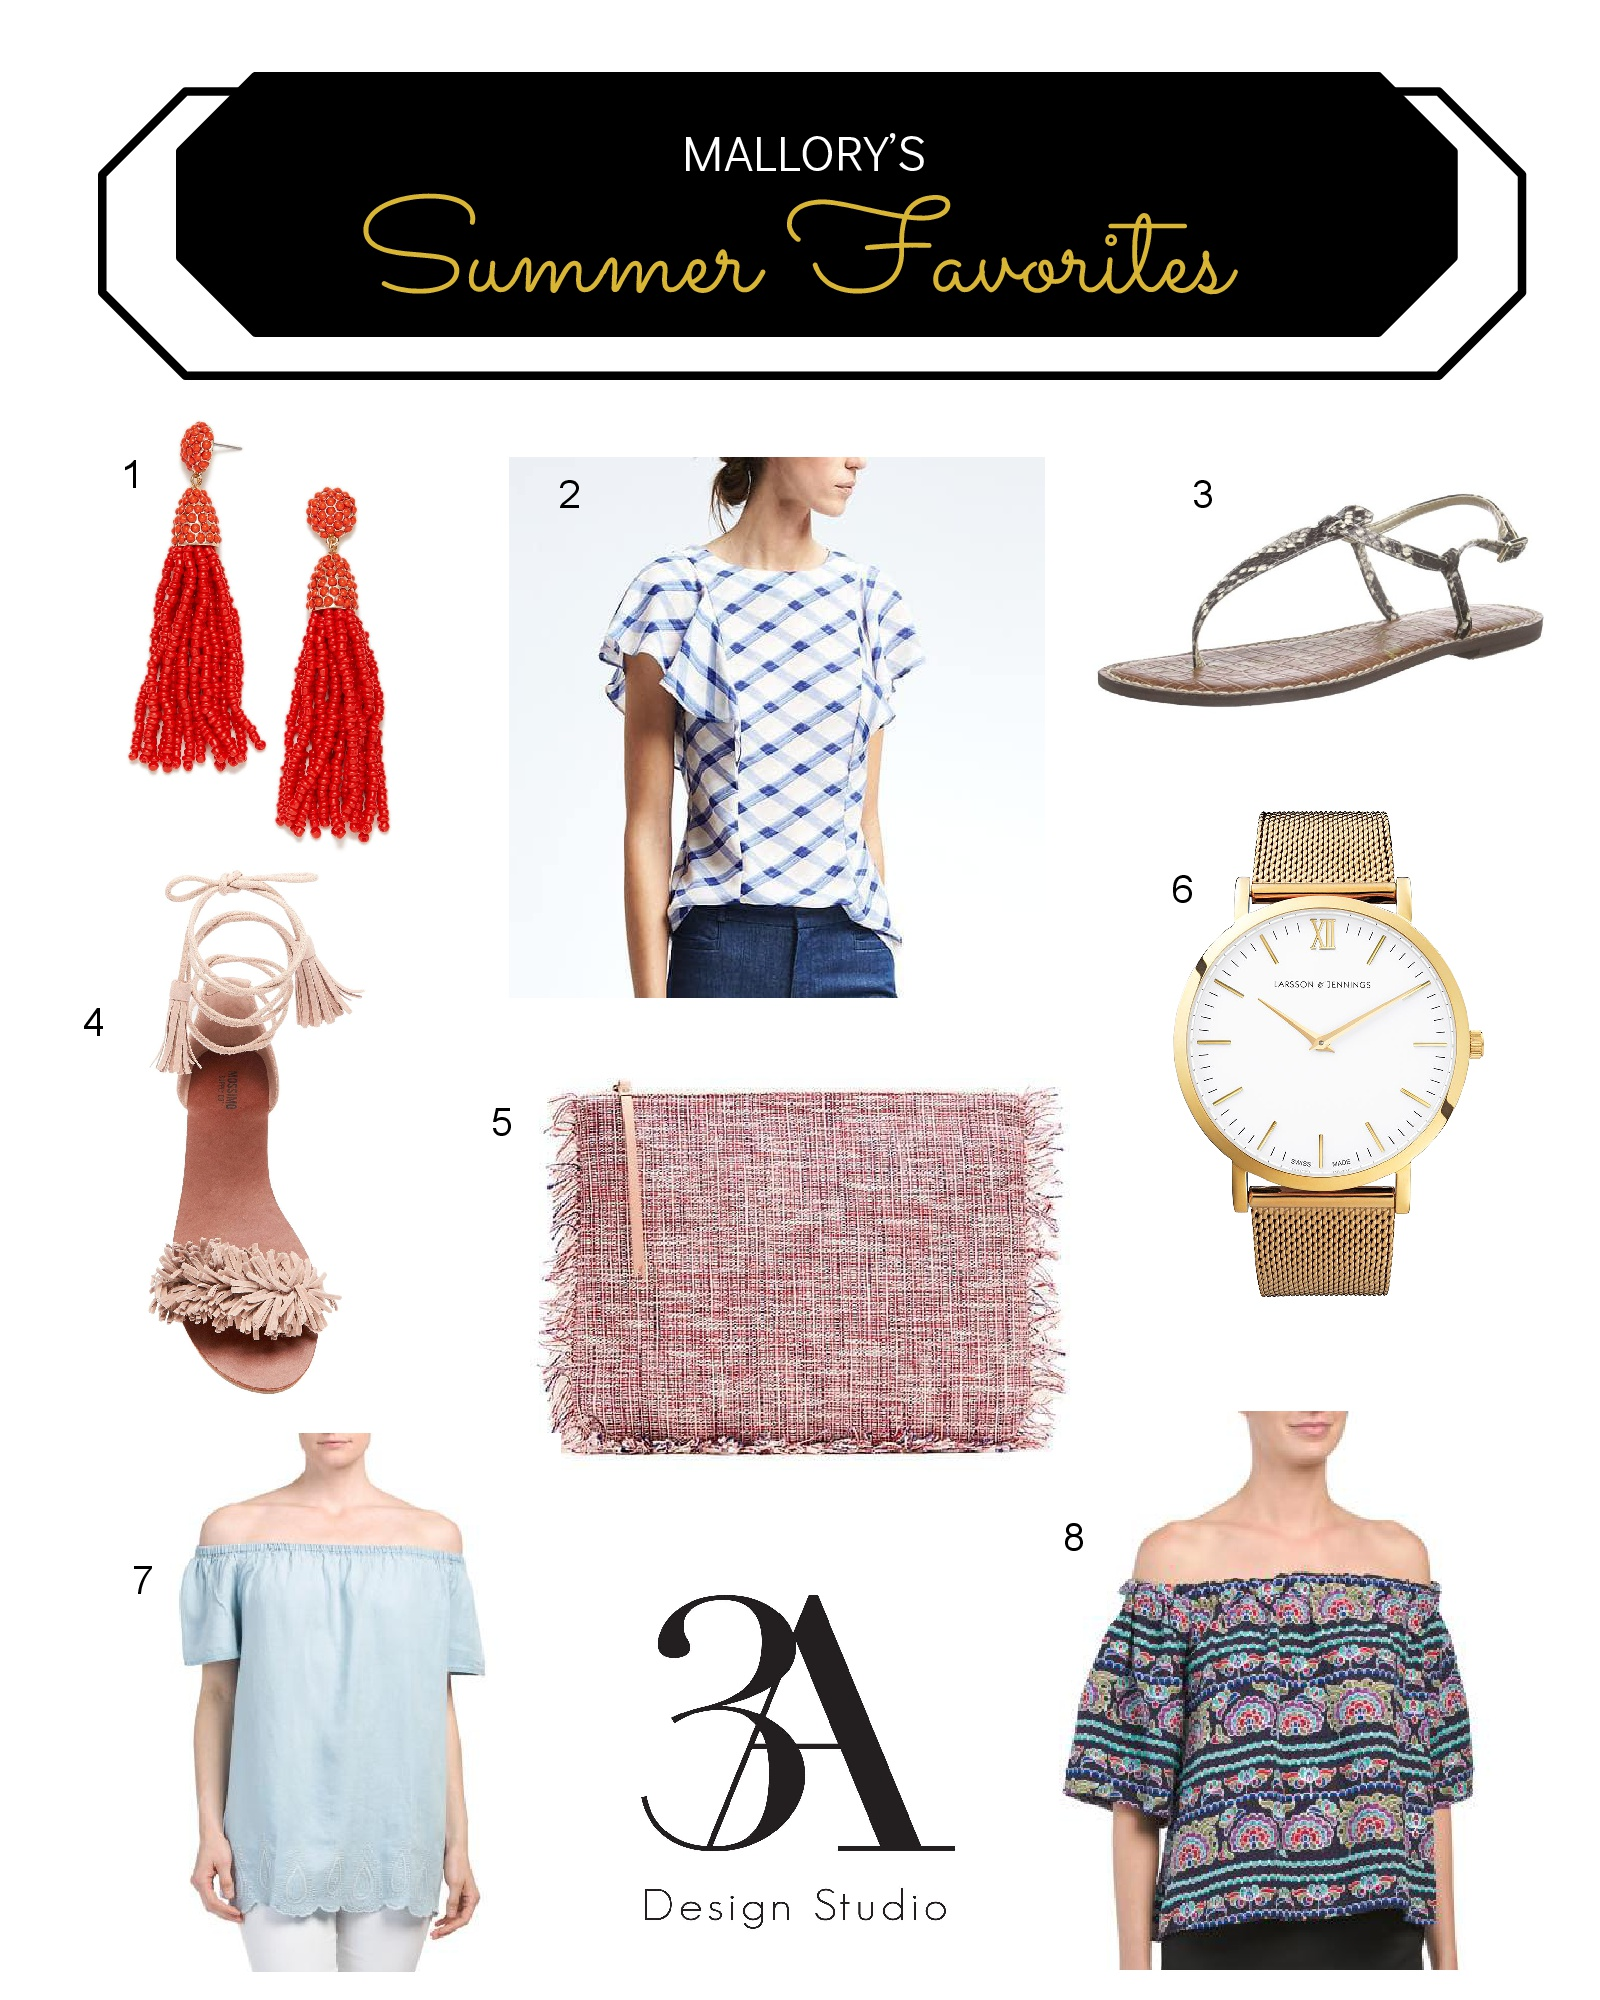 summer fashion favorities 3a design studio